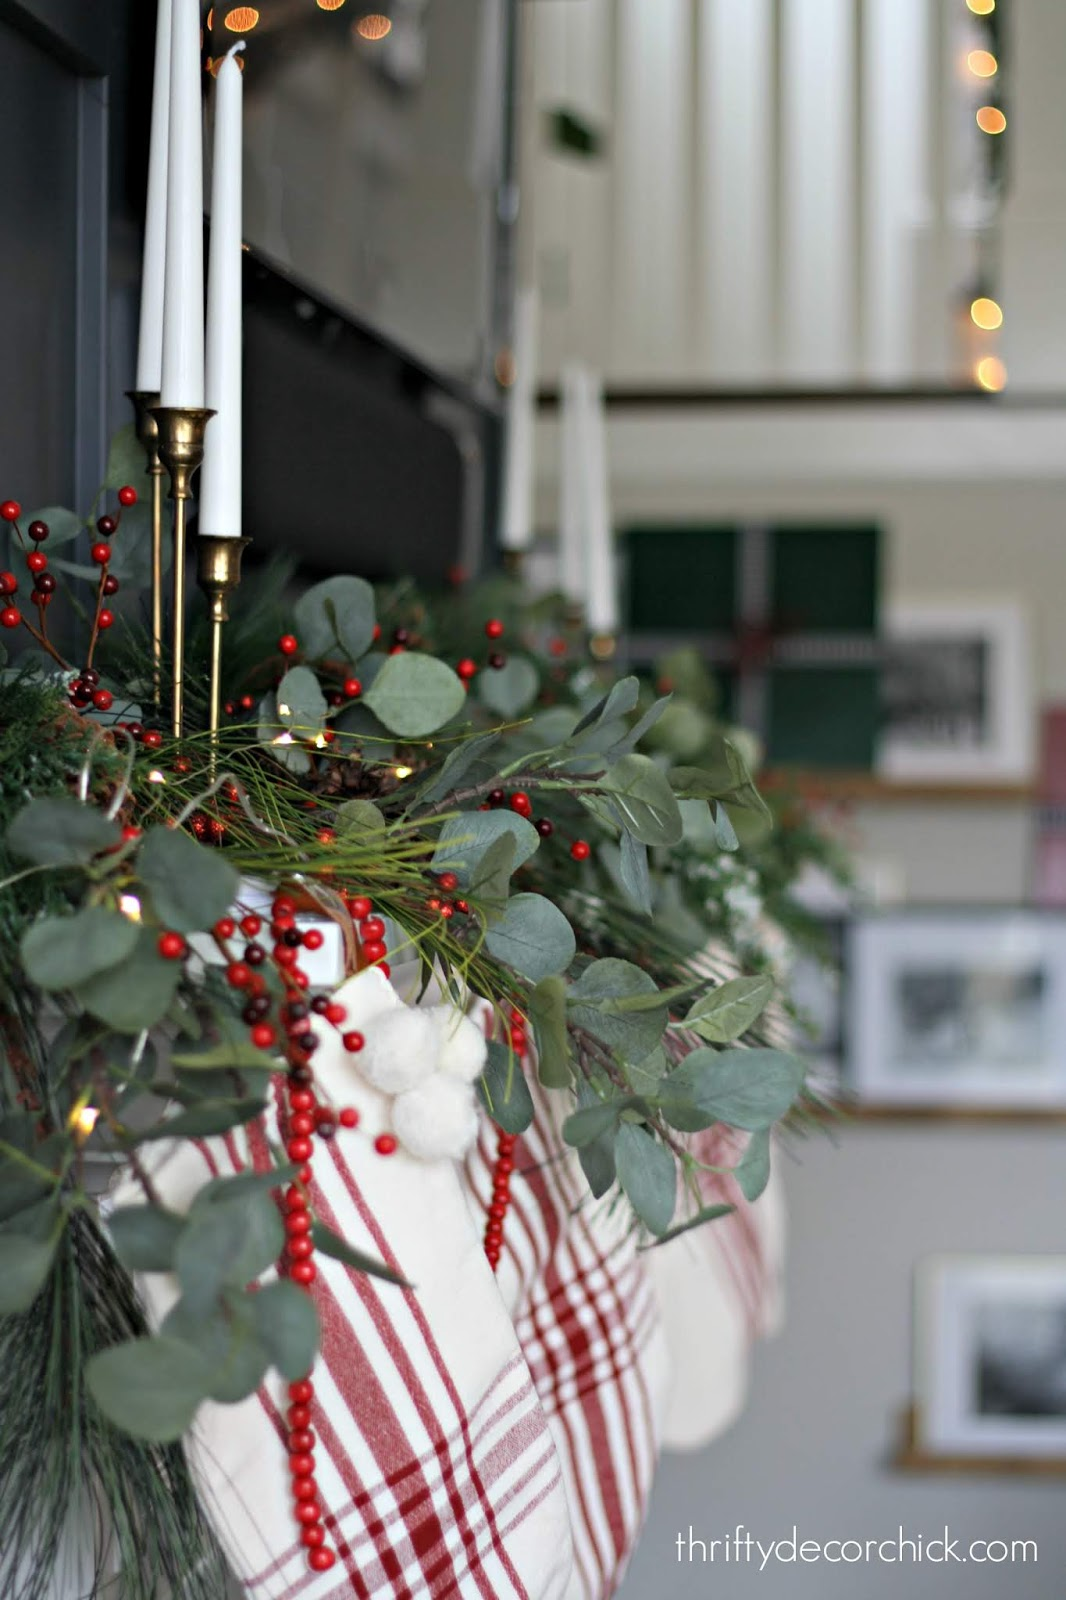 Using eucalyptus in Christmas decor